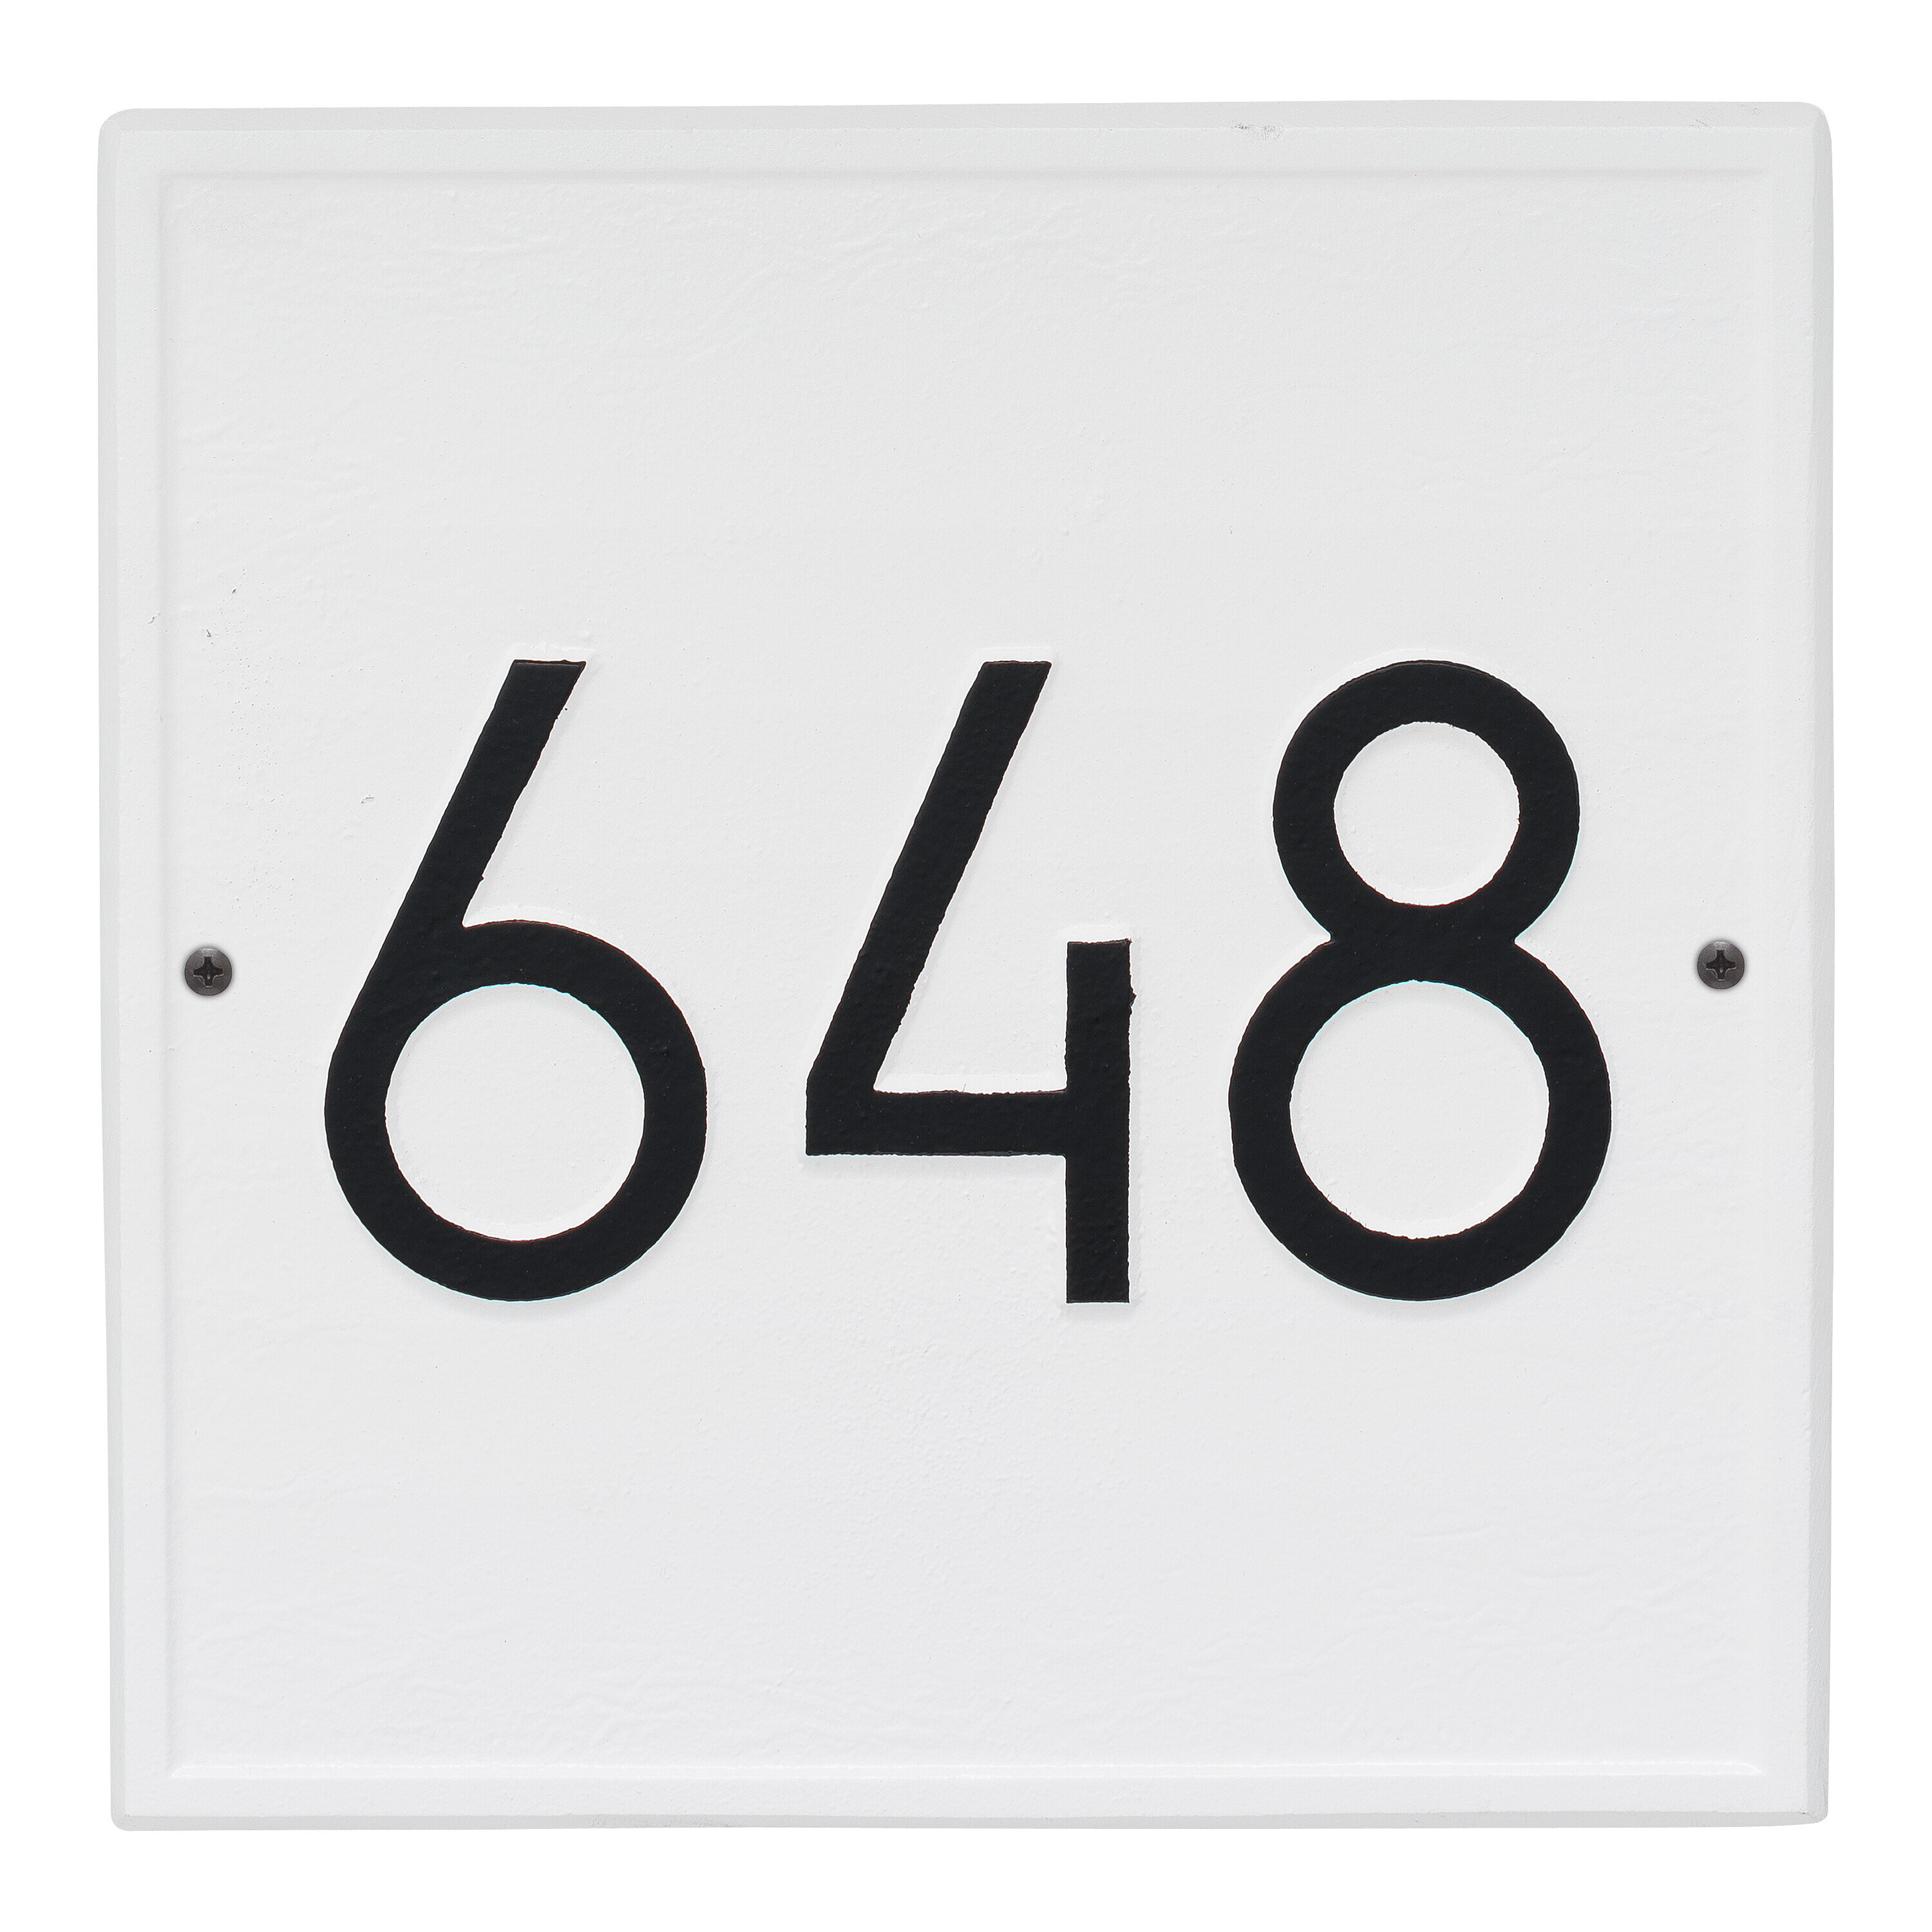 Personalized Address Marker sign Whitehall square large